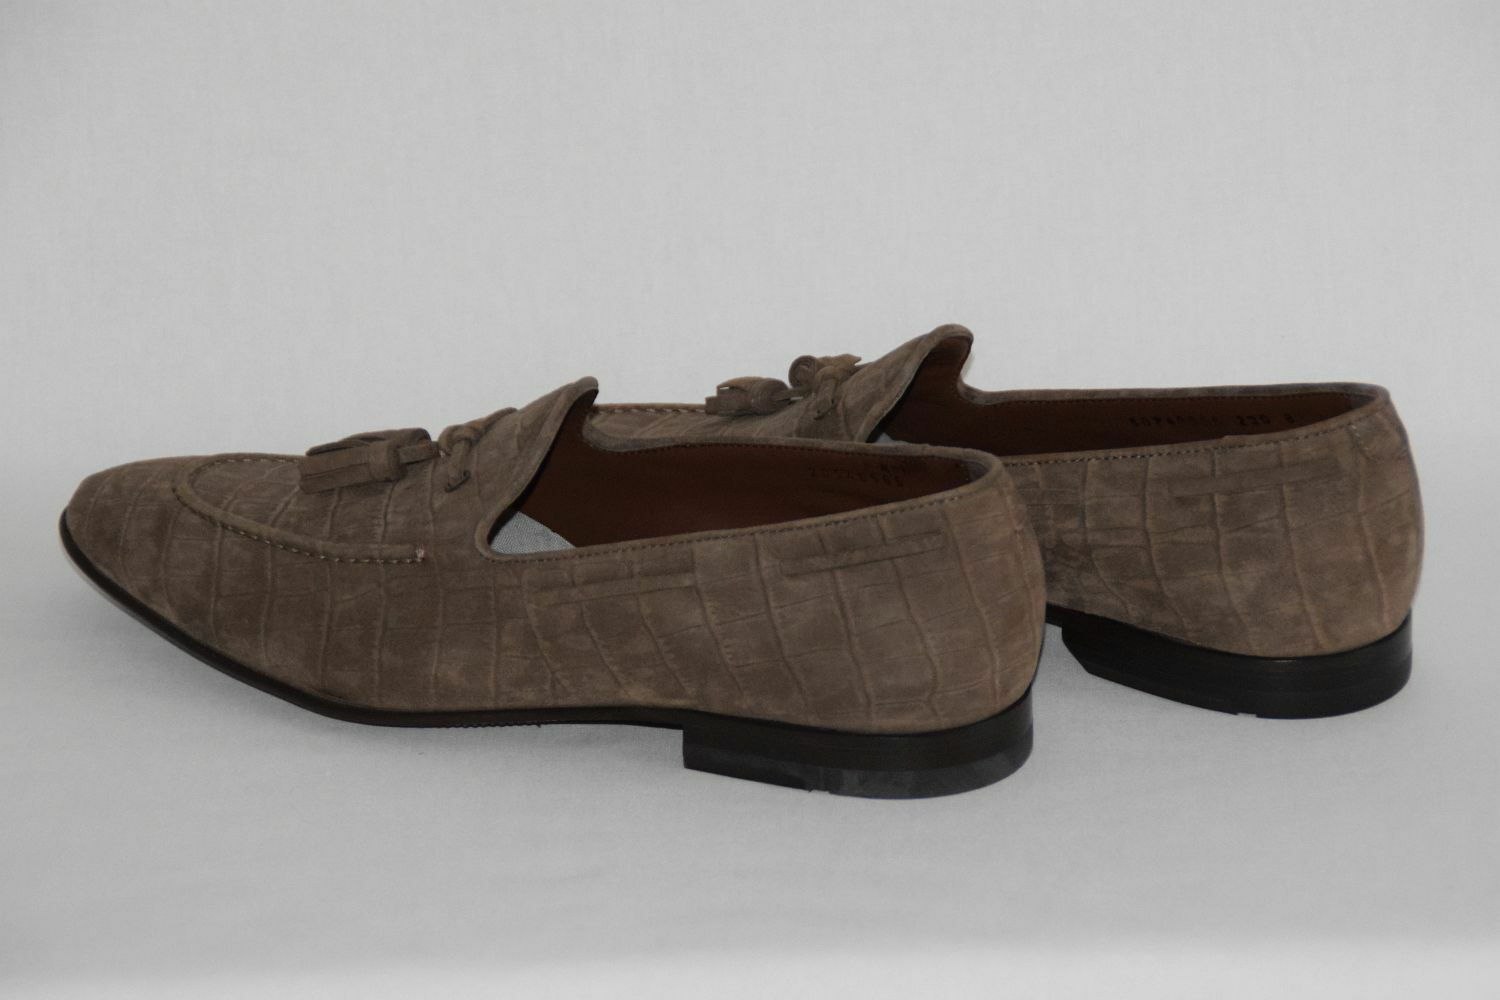 Scarpe casual da uomo  Hugo BOSS pennyloafer, Tg. 42, UVP: , light/PASTEL Brown